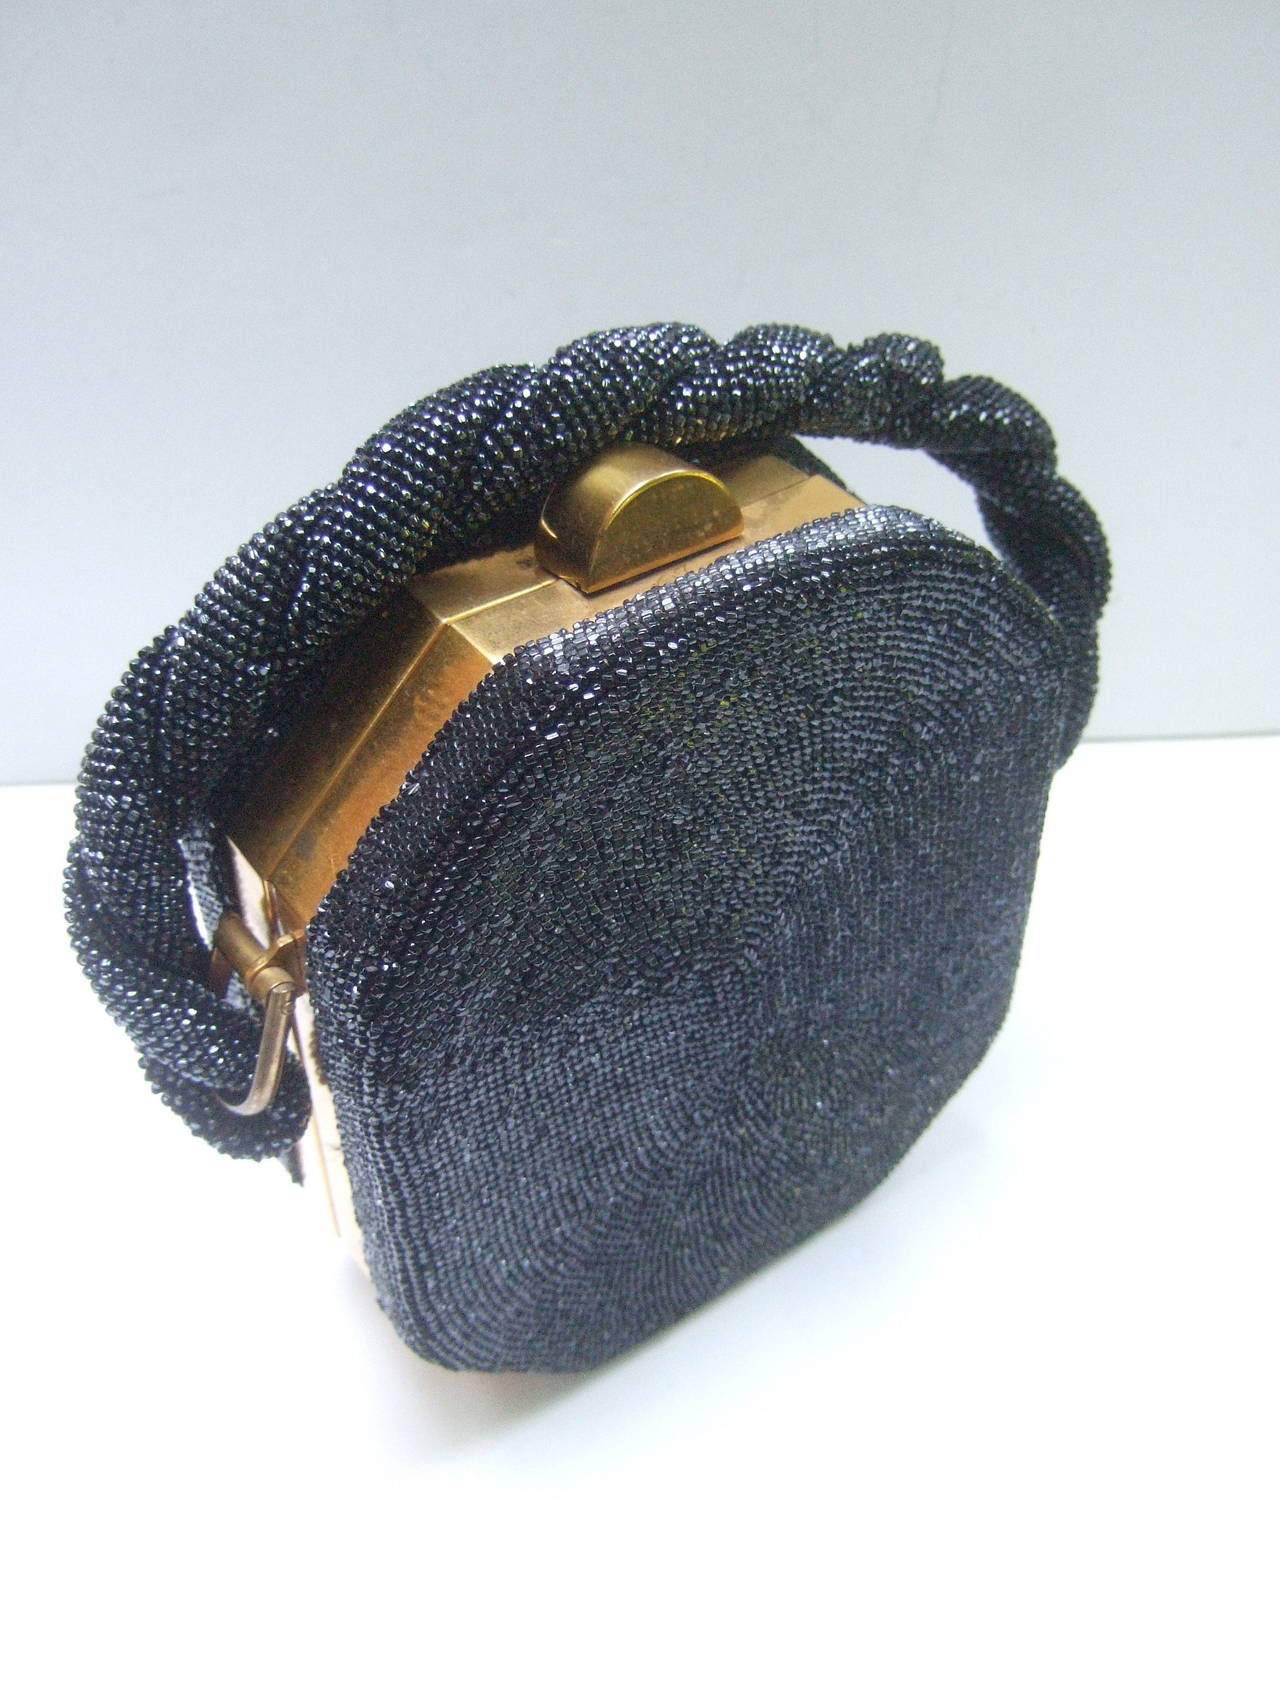 1stdibs 1940s Art Deco Black Carnival Glass Beaded Handbag HHj5o9J2